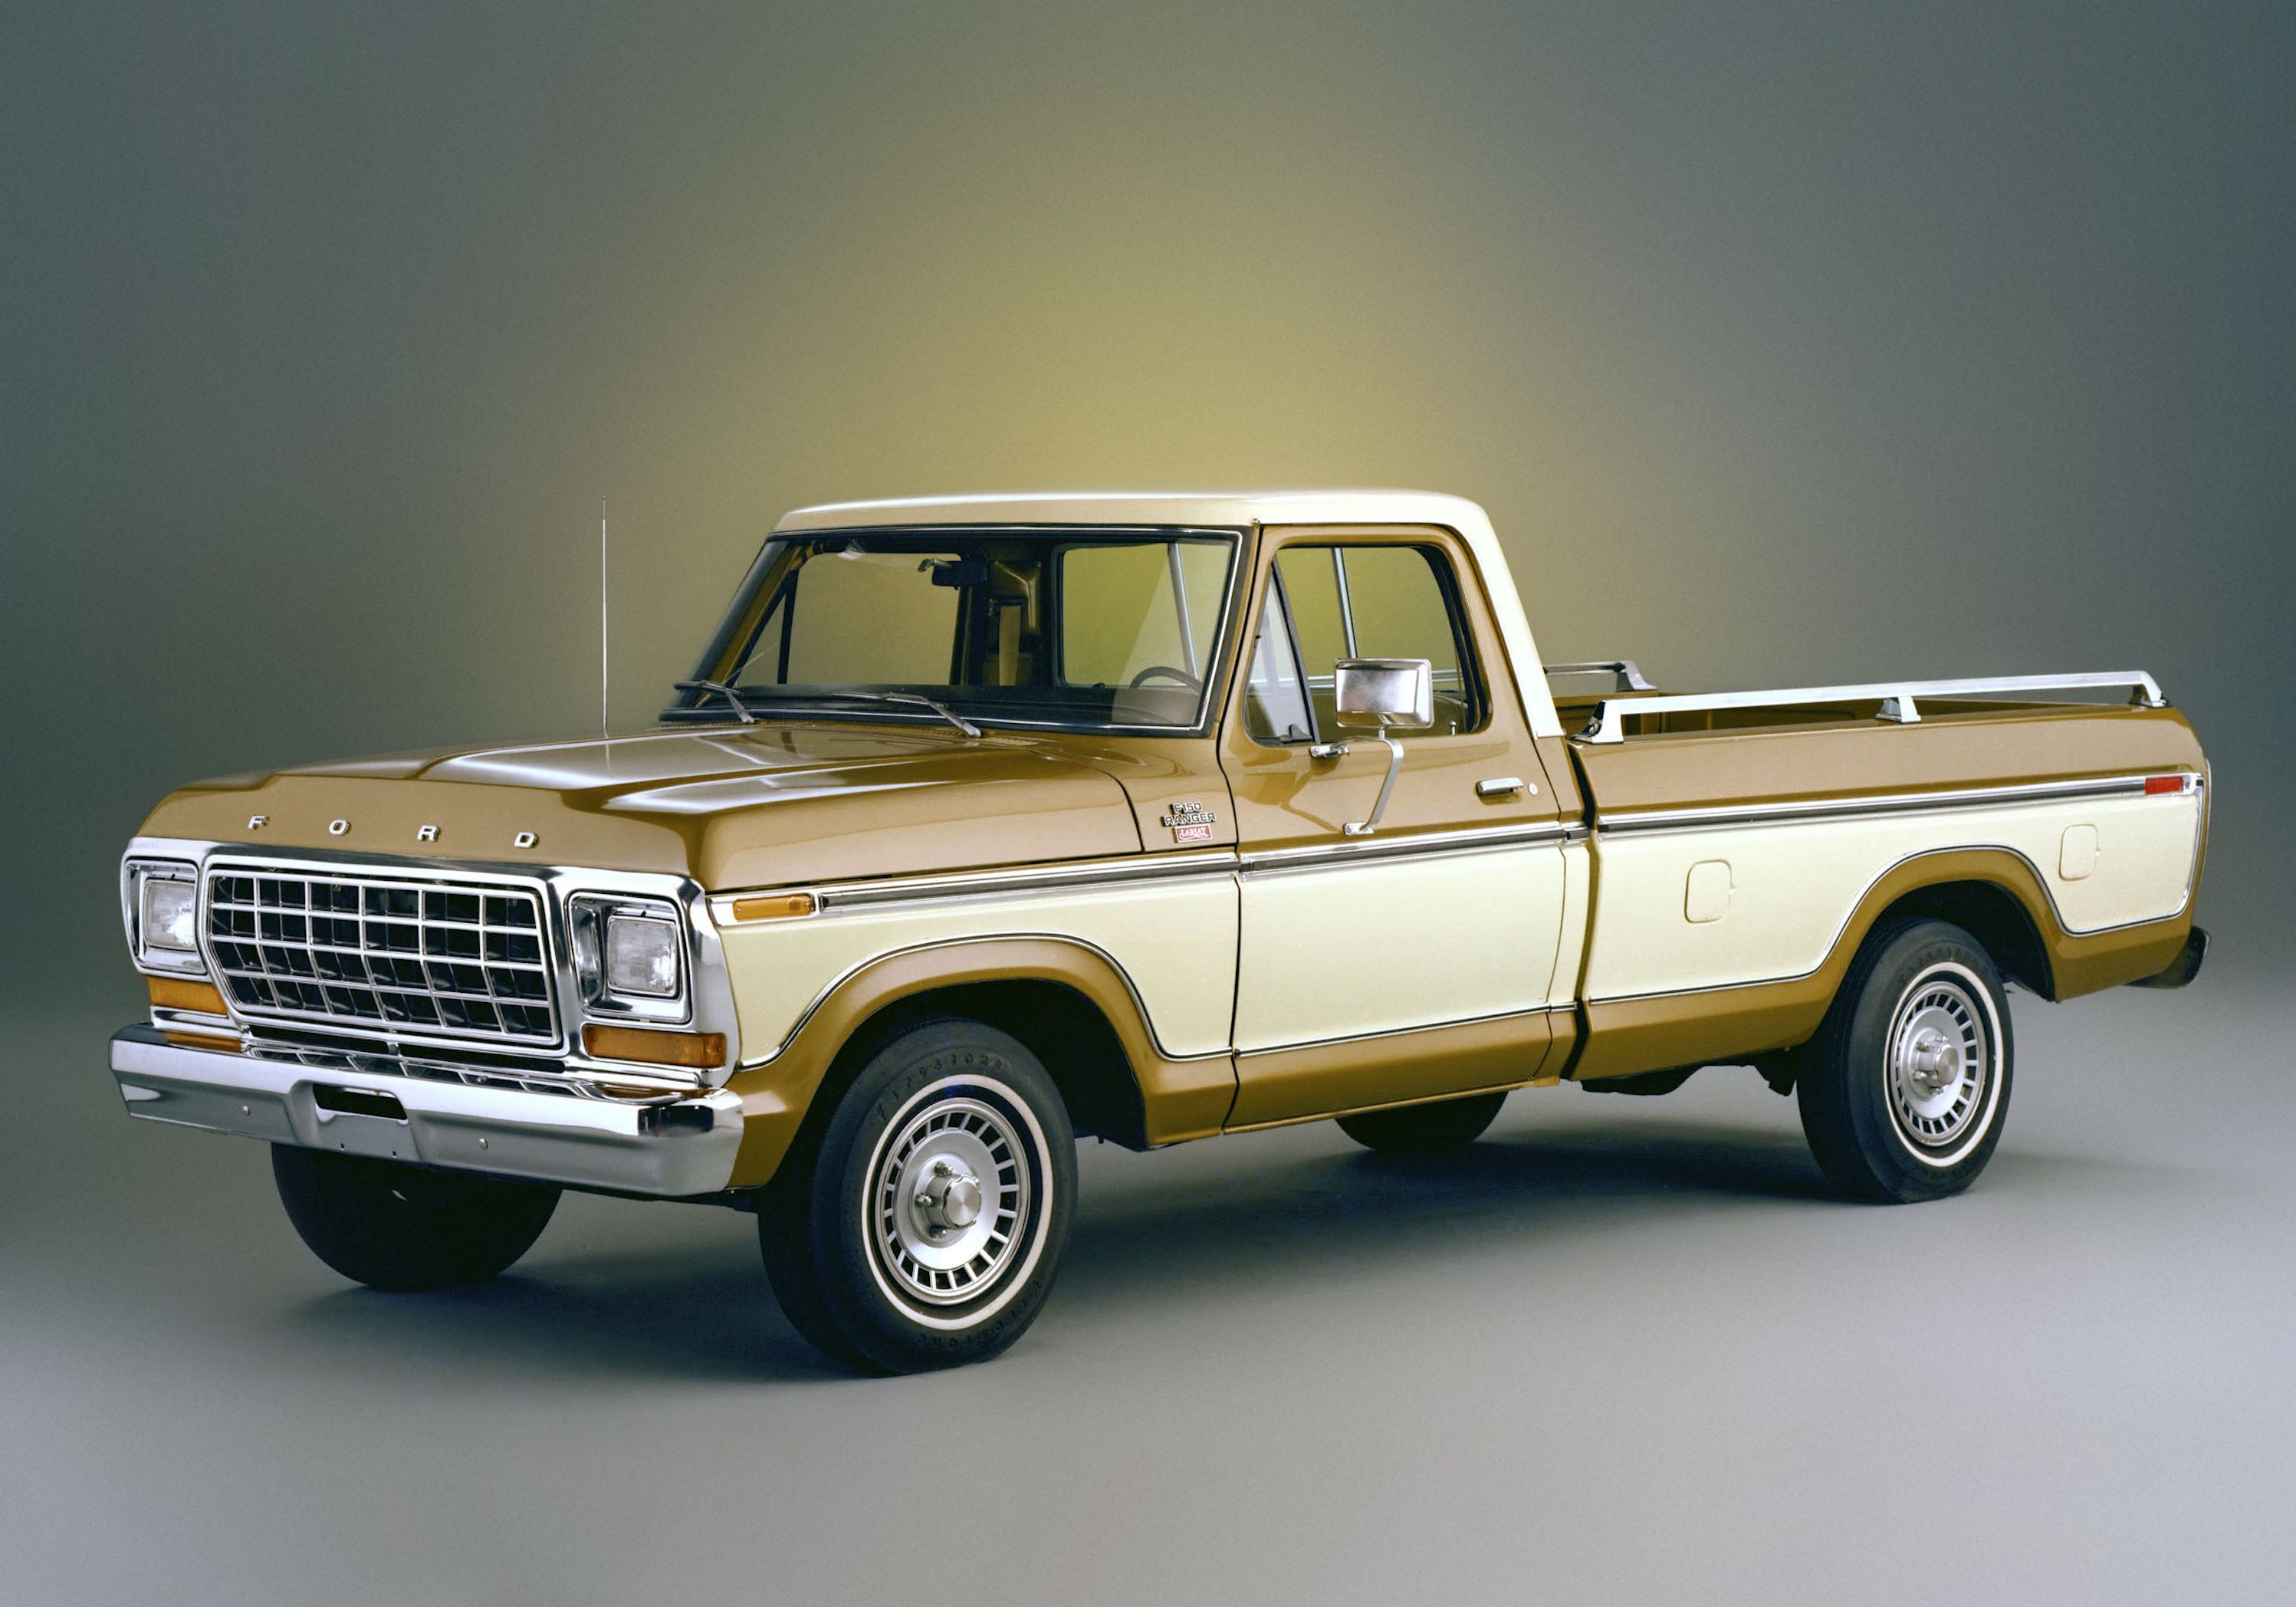 medium resolution of 1979 ford f 150 ranger lariat pickup